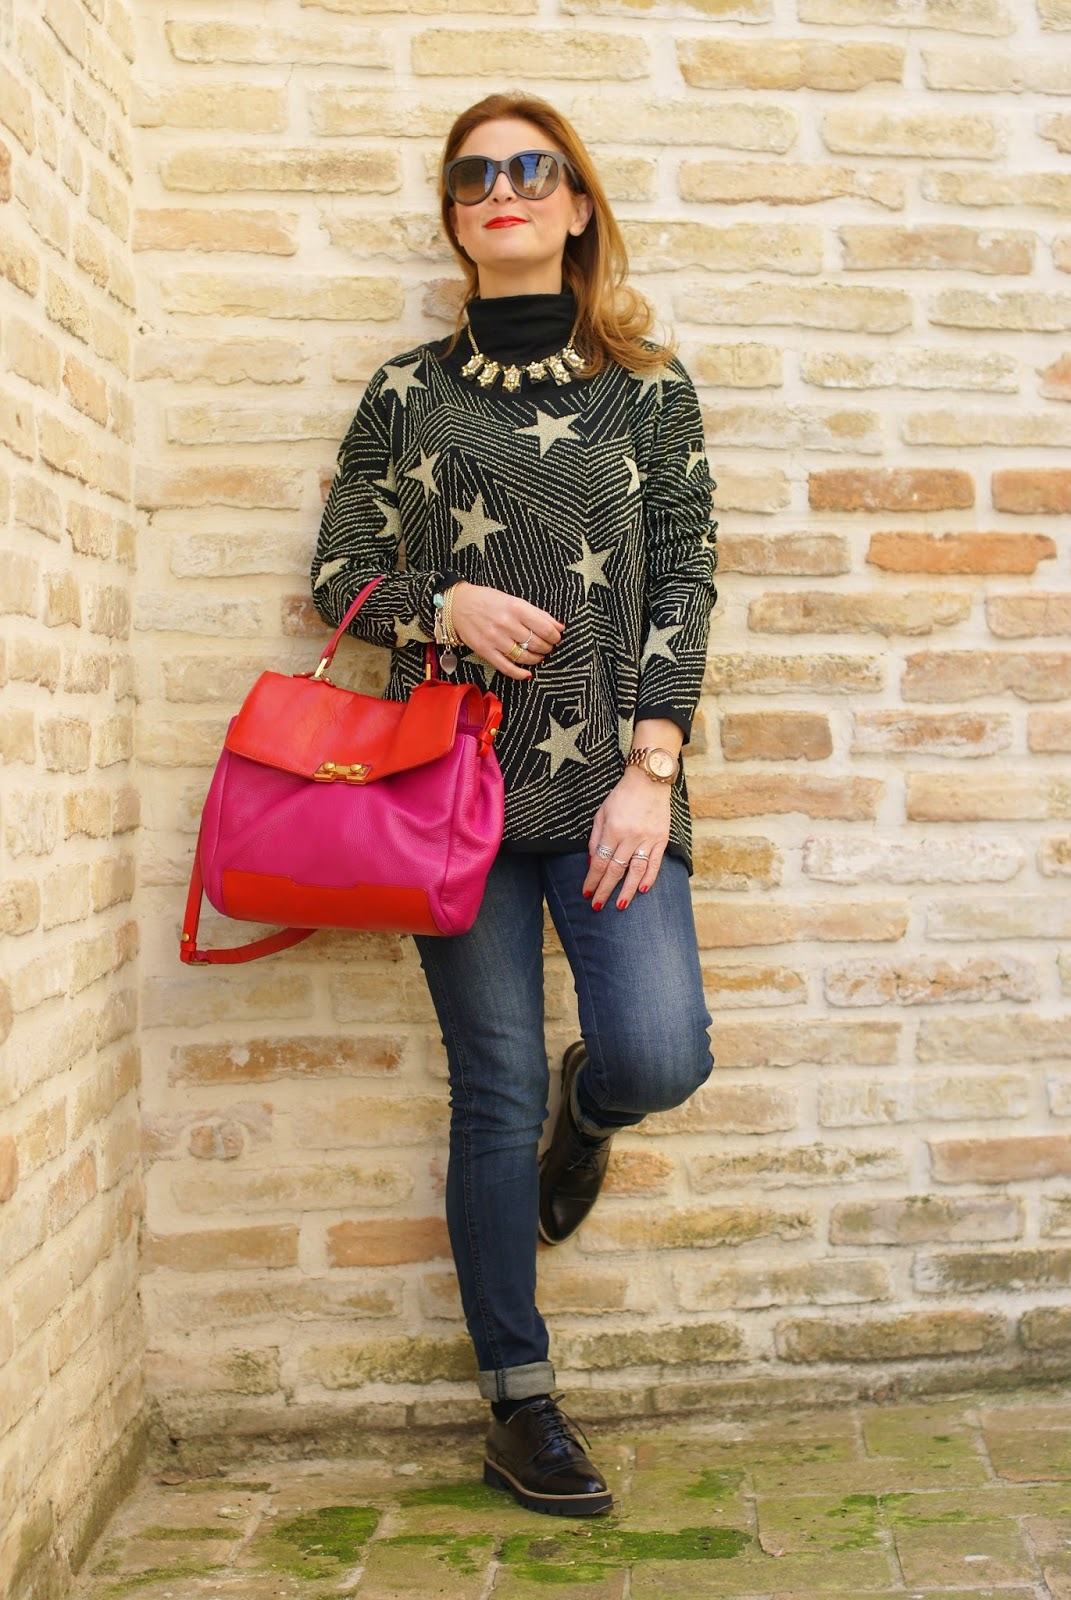 Mismash starry sweater, croc print lace up track sole shoes, maglione con stelle, Fashion and Cookies, fashion blogger